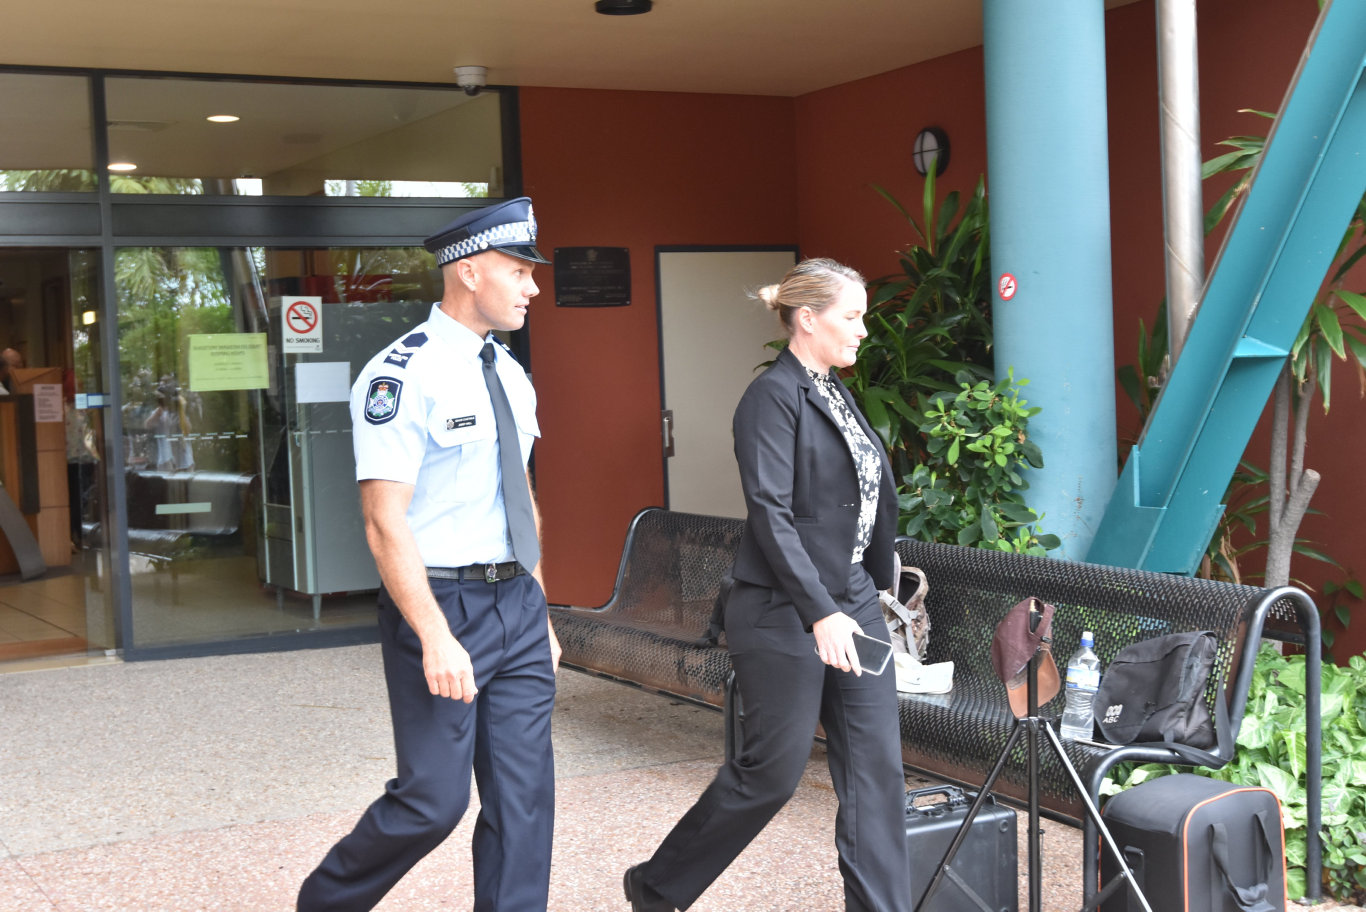 Queensland Police Service diver Senior Constable James Hall gave evidence on Wednesday at the Coroners Court in Gladstone during the joint inquest into the sinkings of vessels Cassandra in April 2016 and Dianne.